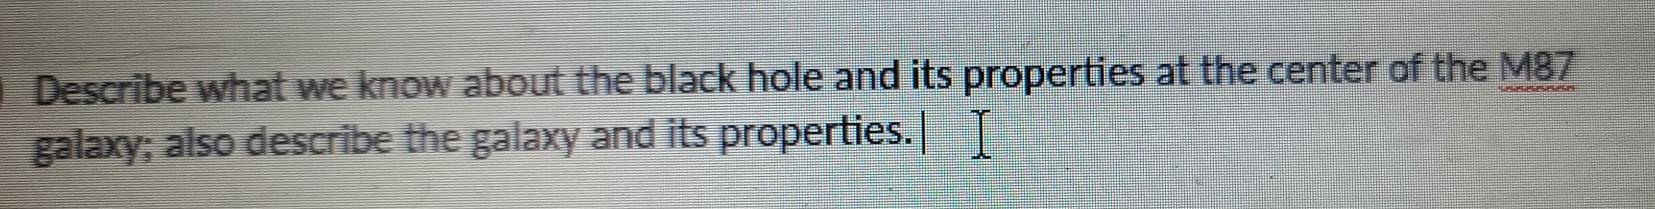 Describe what we know about the black hole and its properties at the center of the M87 galaxy; also describe the galaxy and i